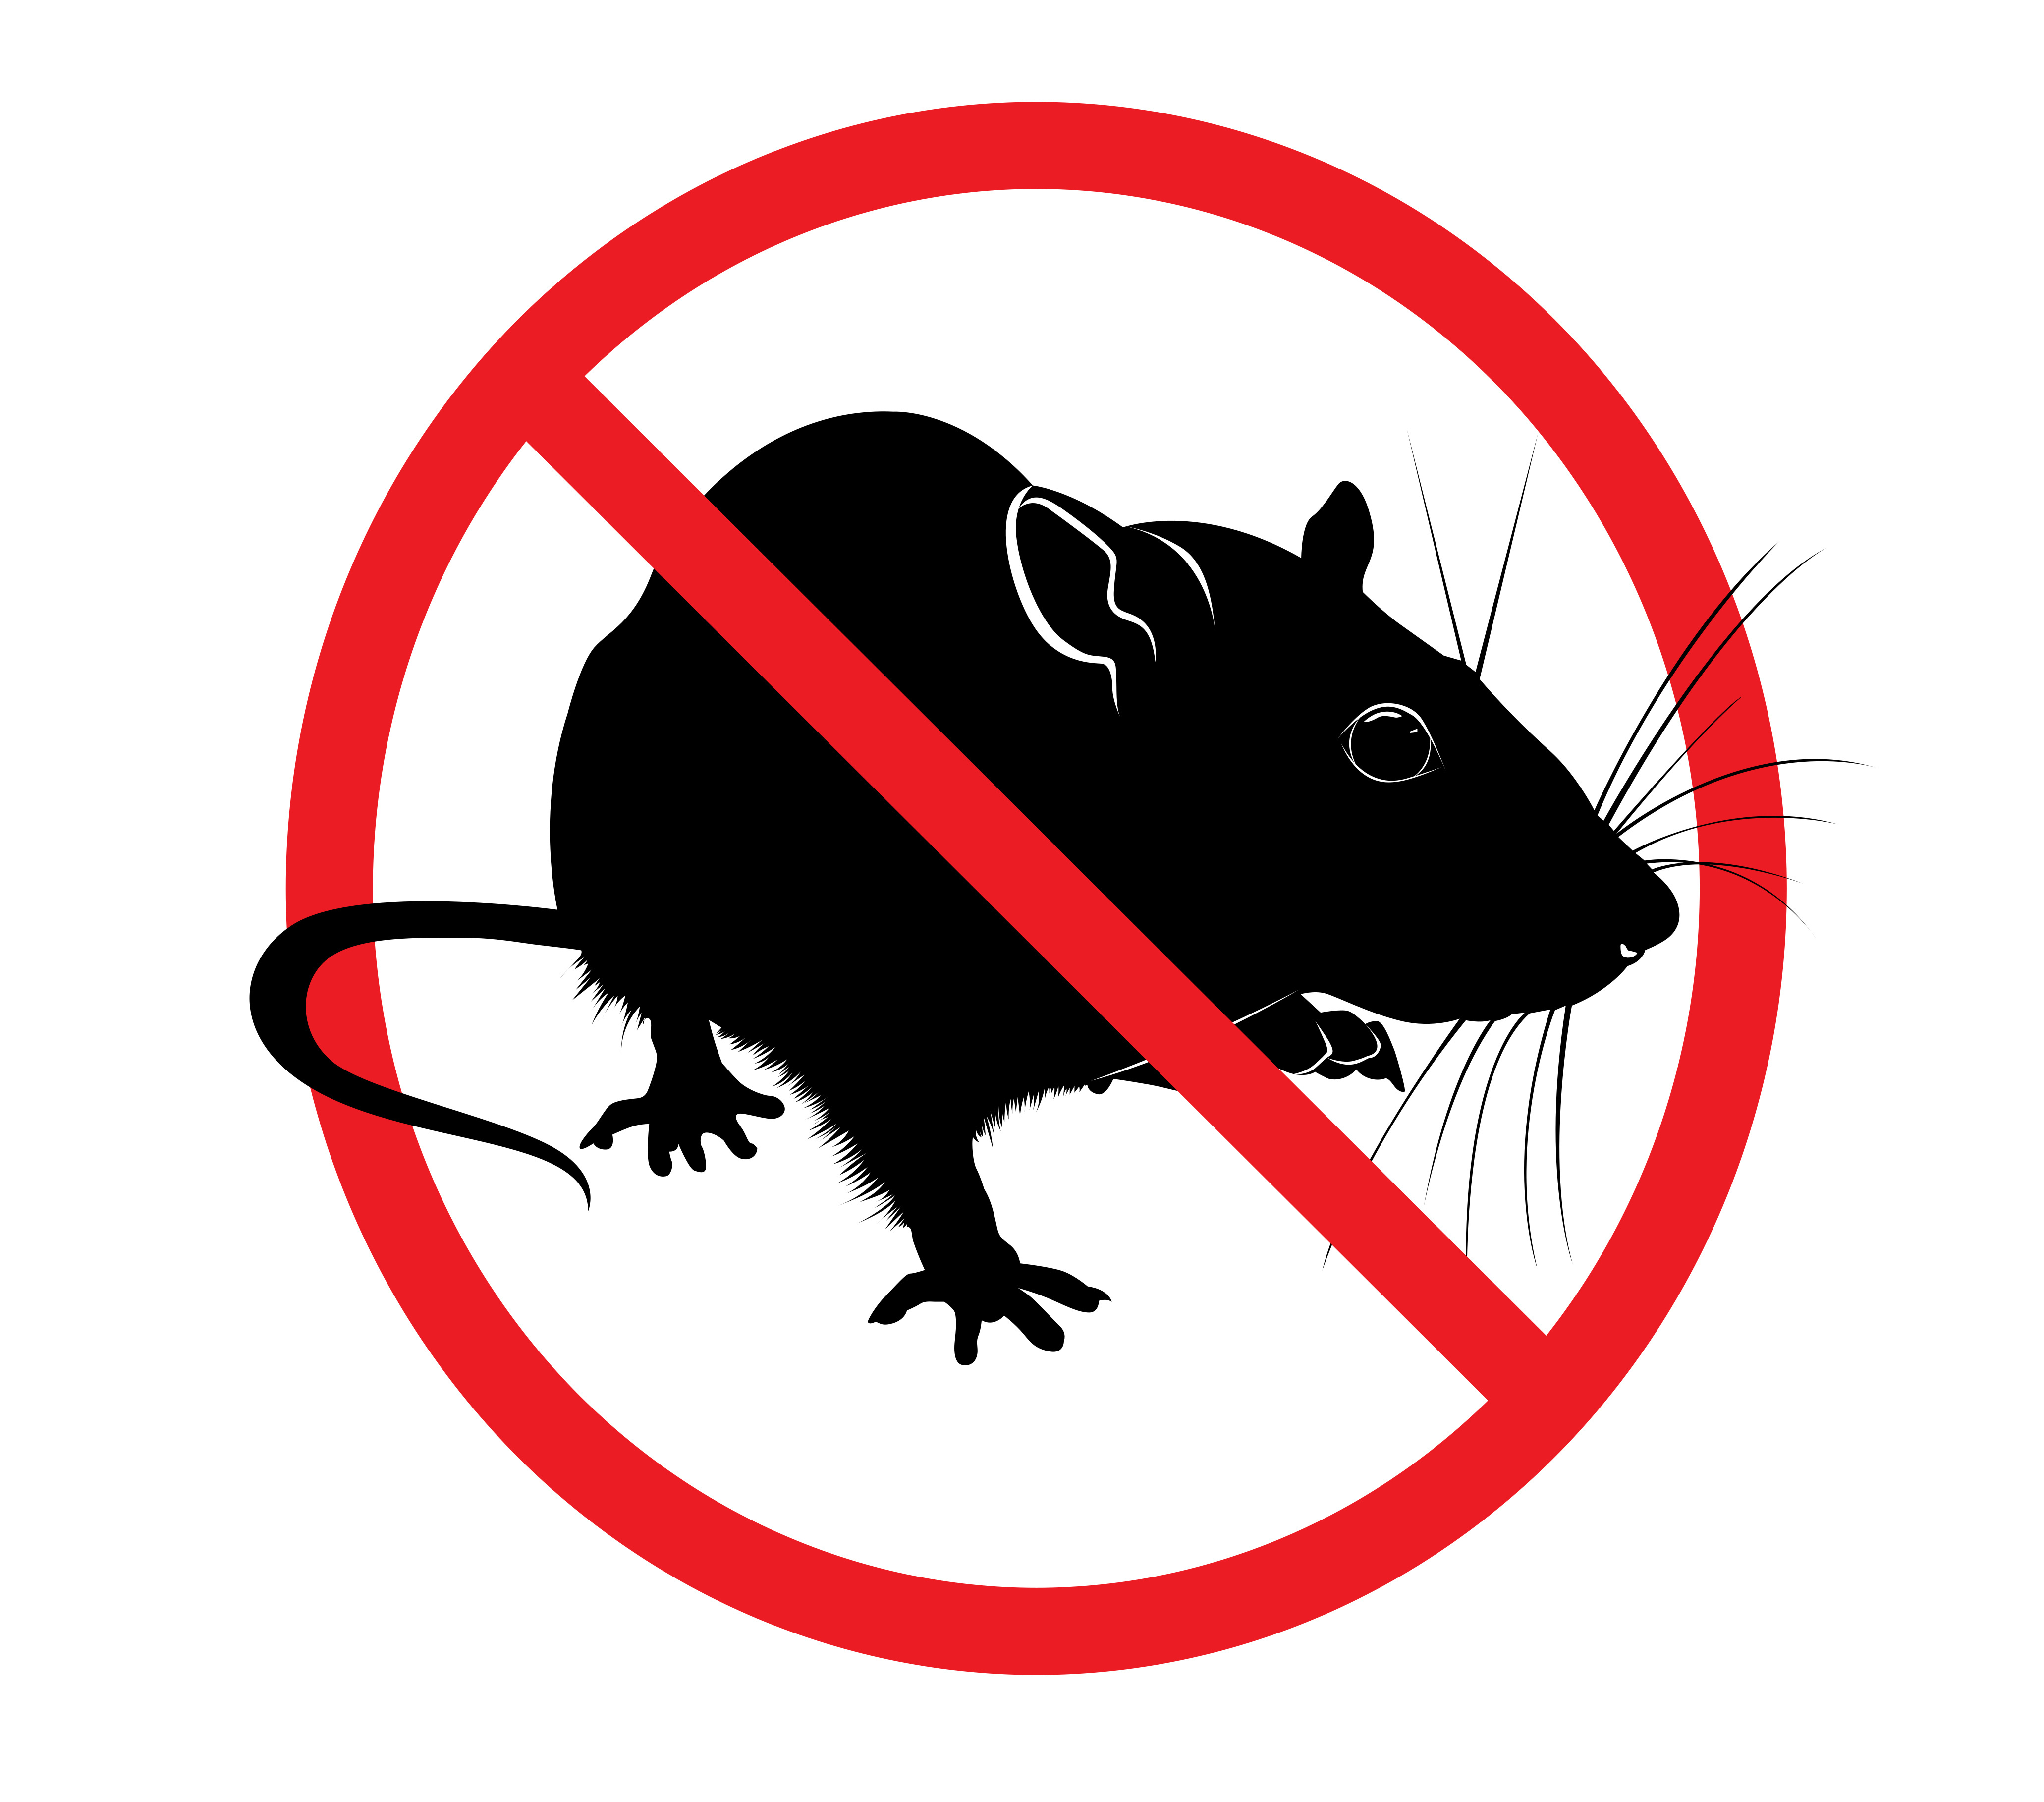 Rat Control And Removal: What You Need To Know